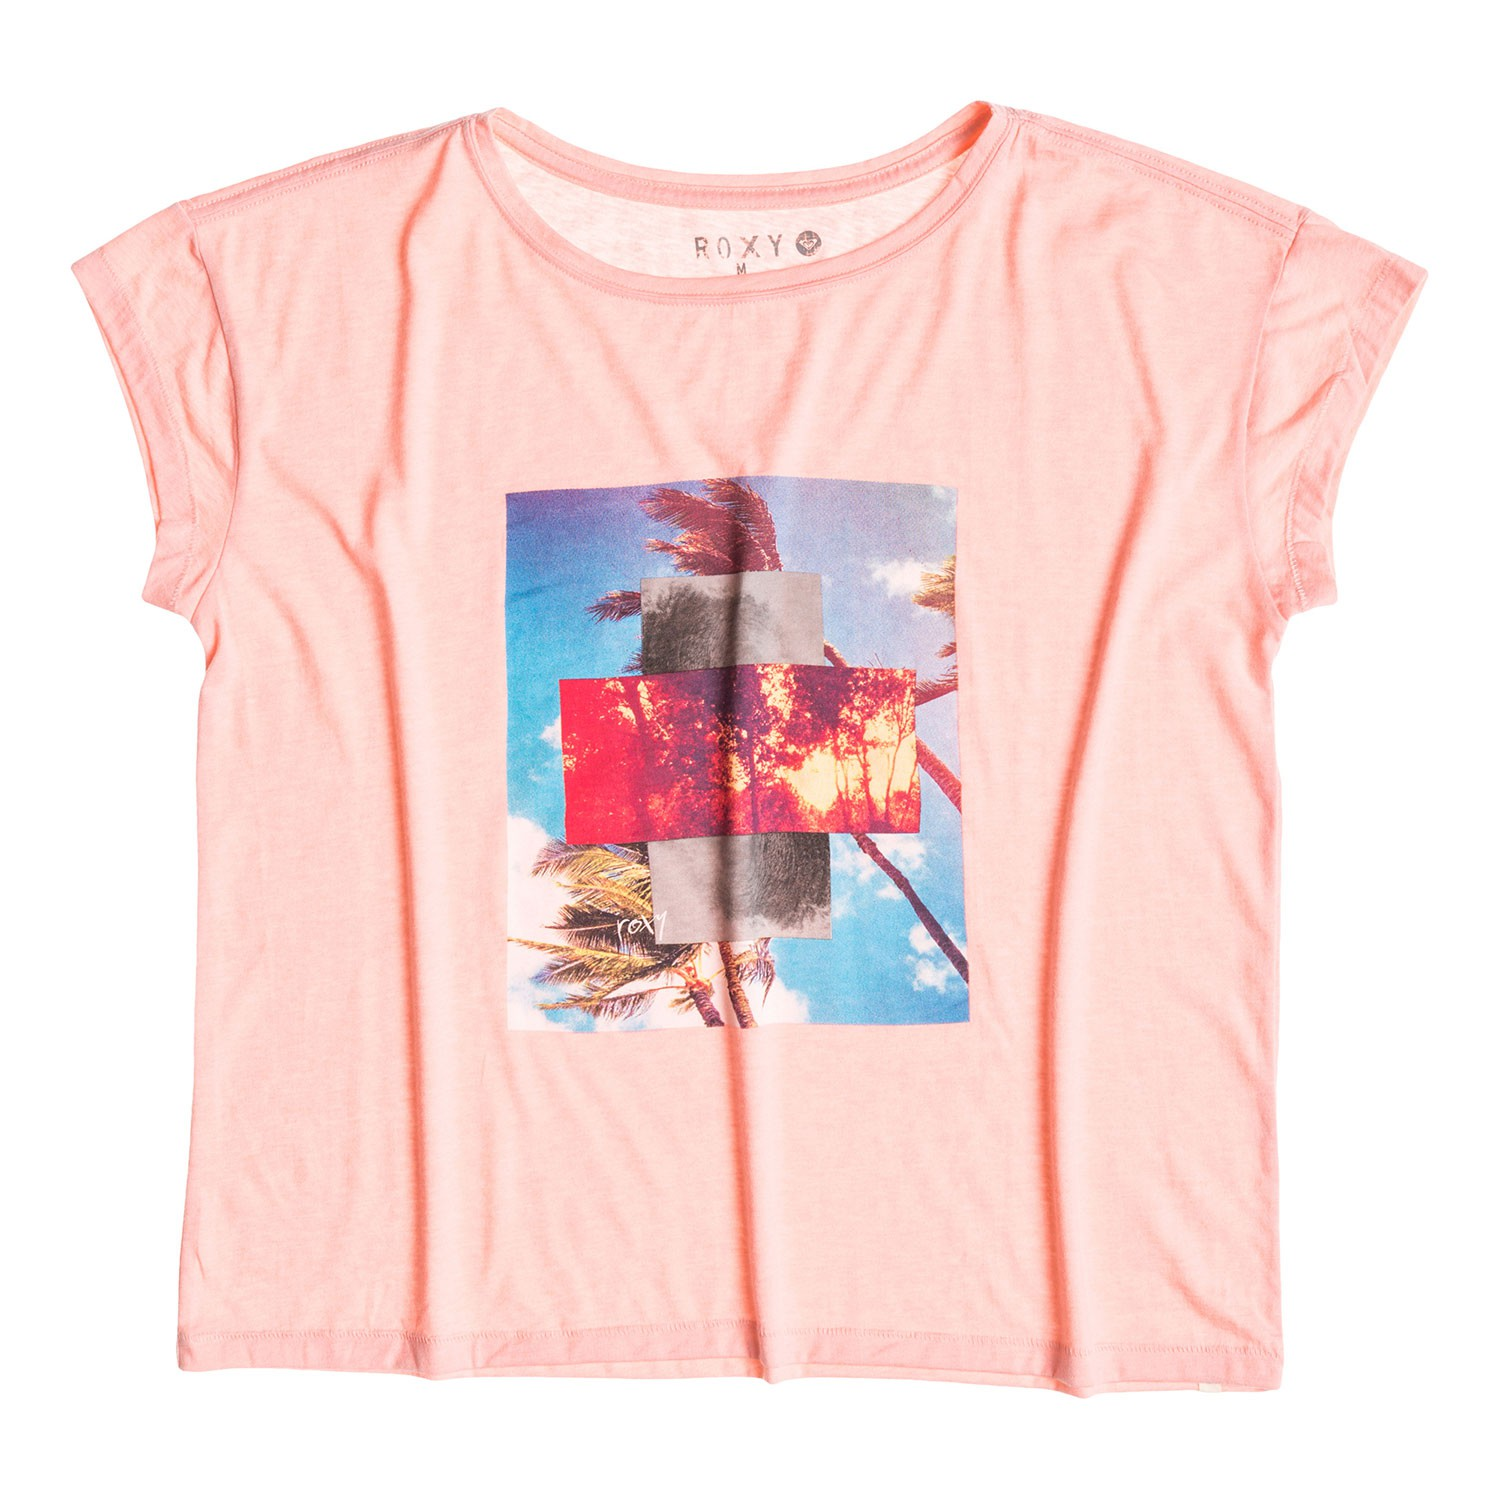 Tričko Roxy New Crew B bloom pink